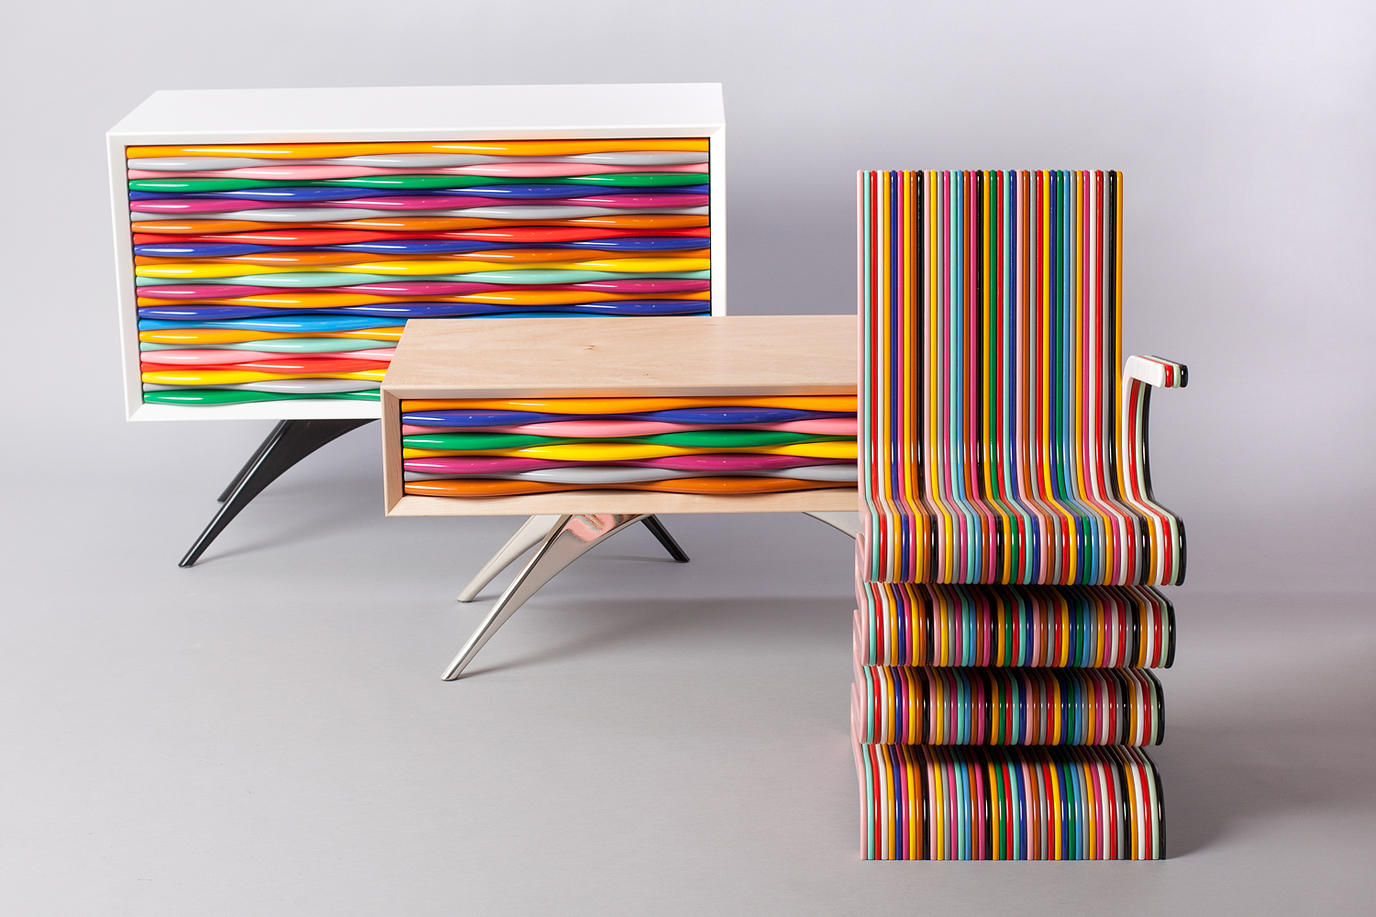 Design pop mobili multicolor di anthony hartley for Design di mobili